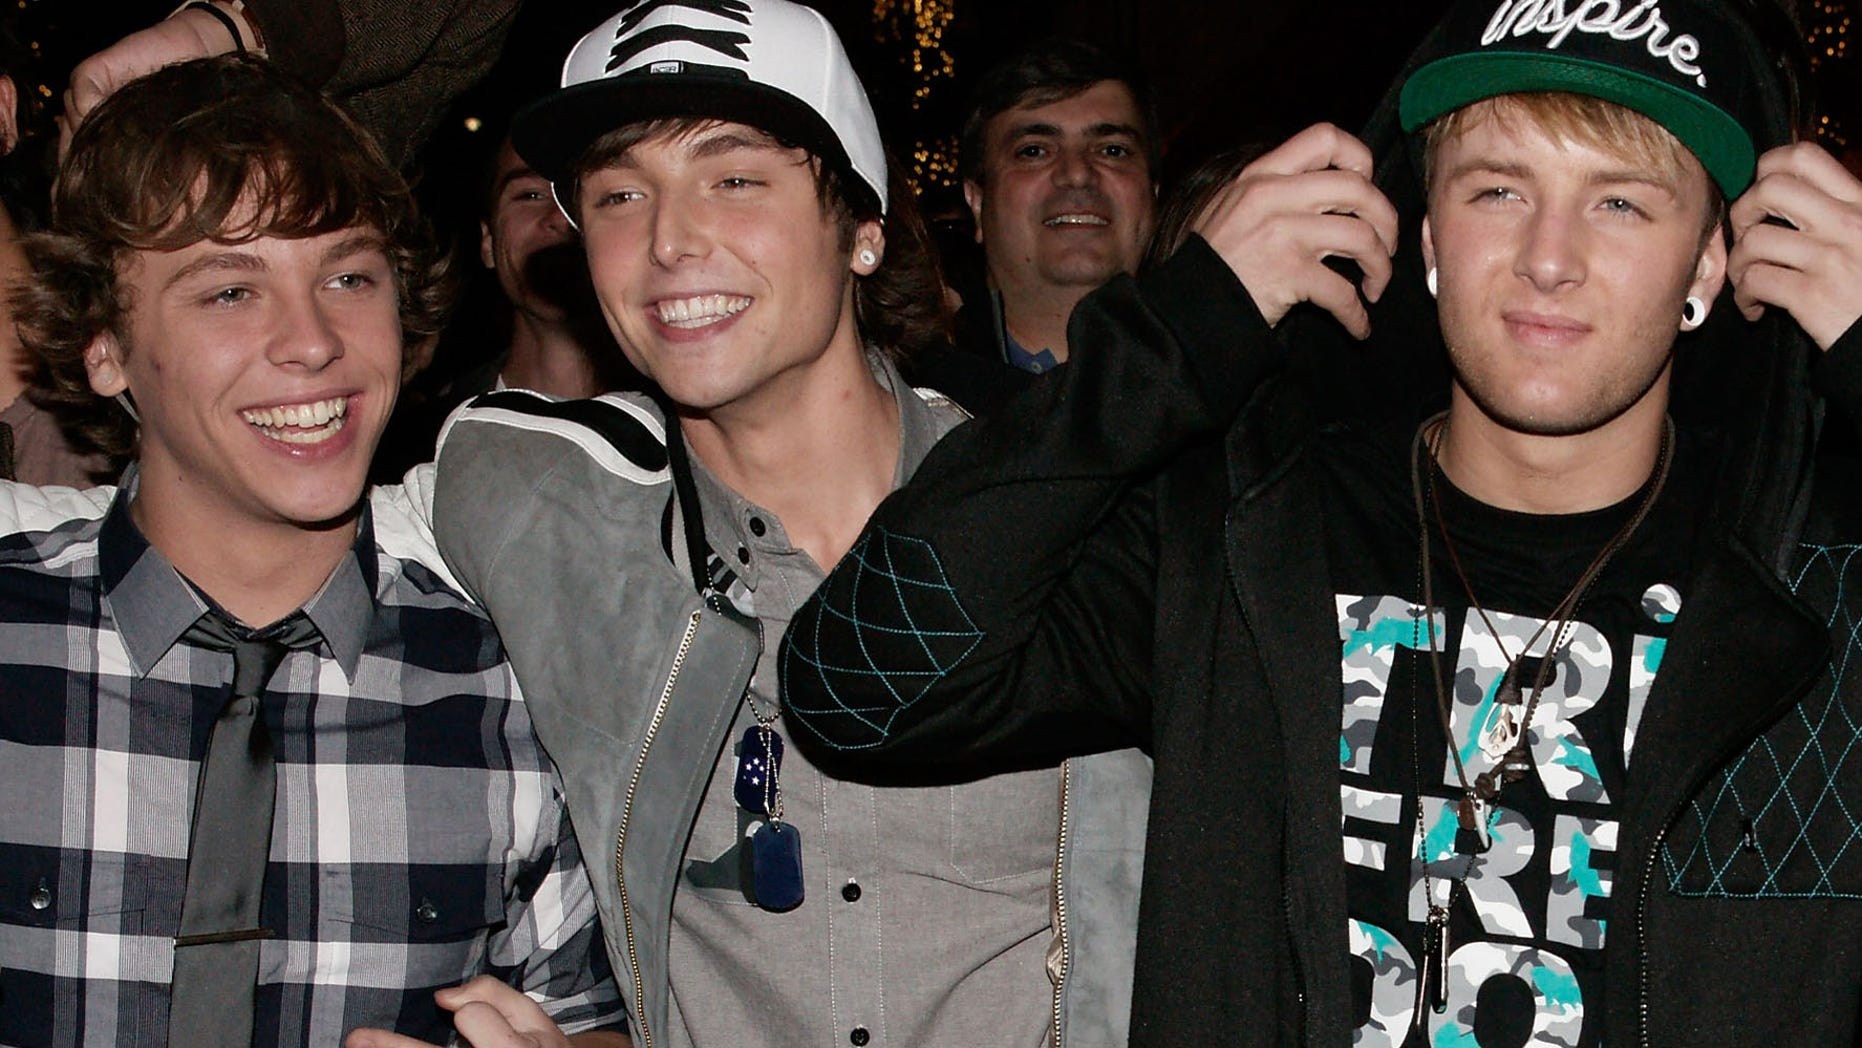 what happened to emblem3